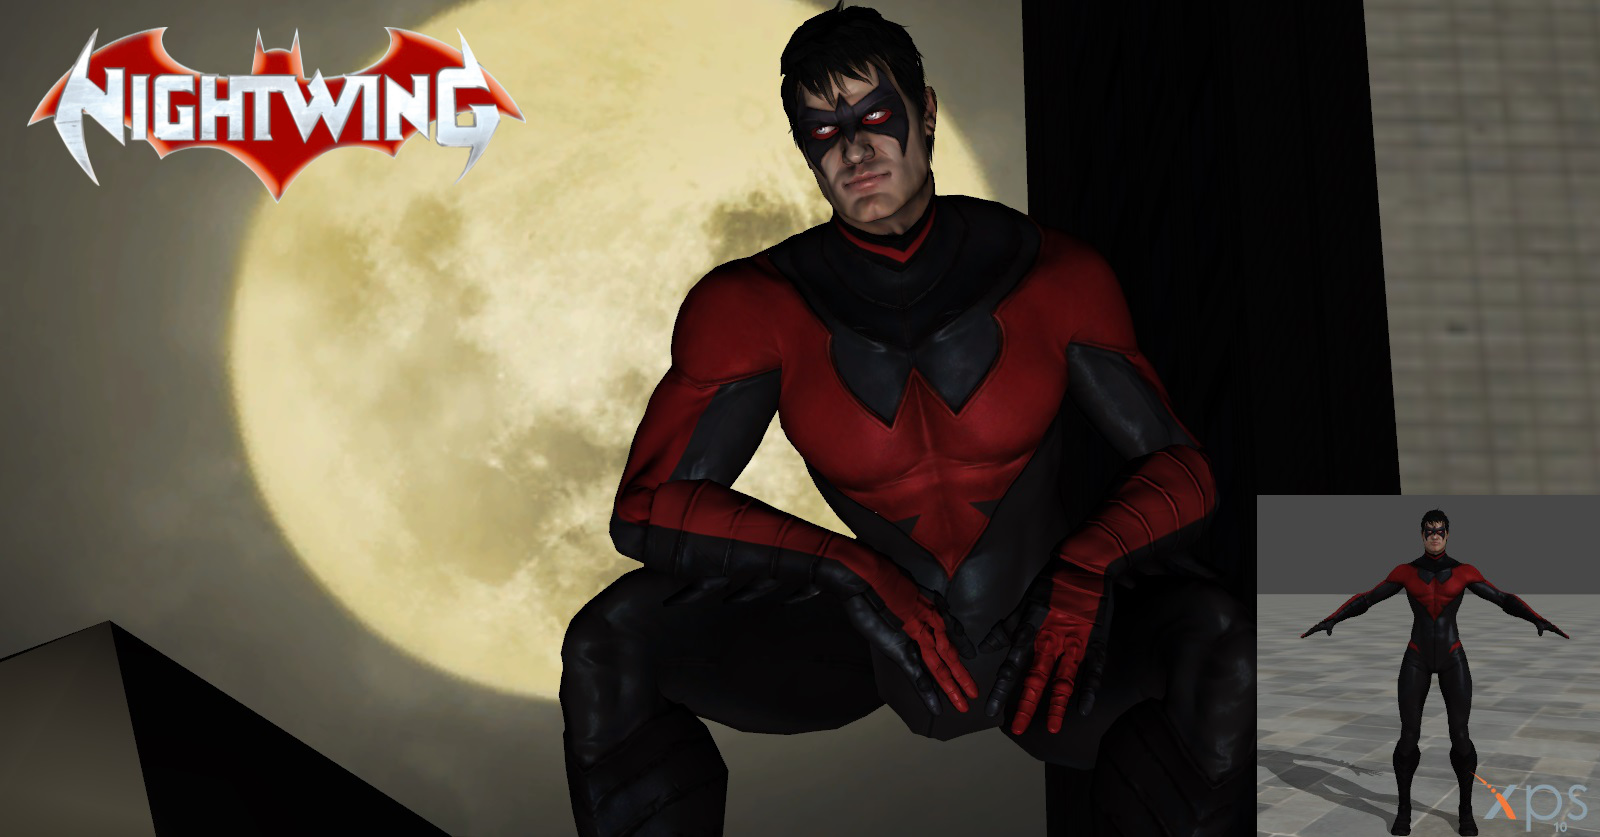 New 52- Nightwing Costume #2 by lonelygoer on DeviantArt